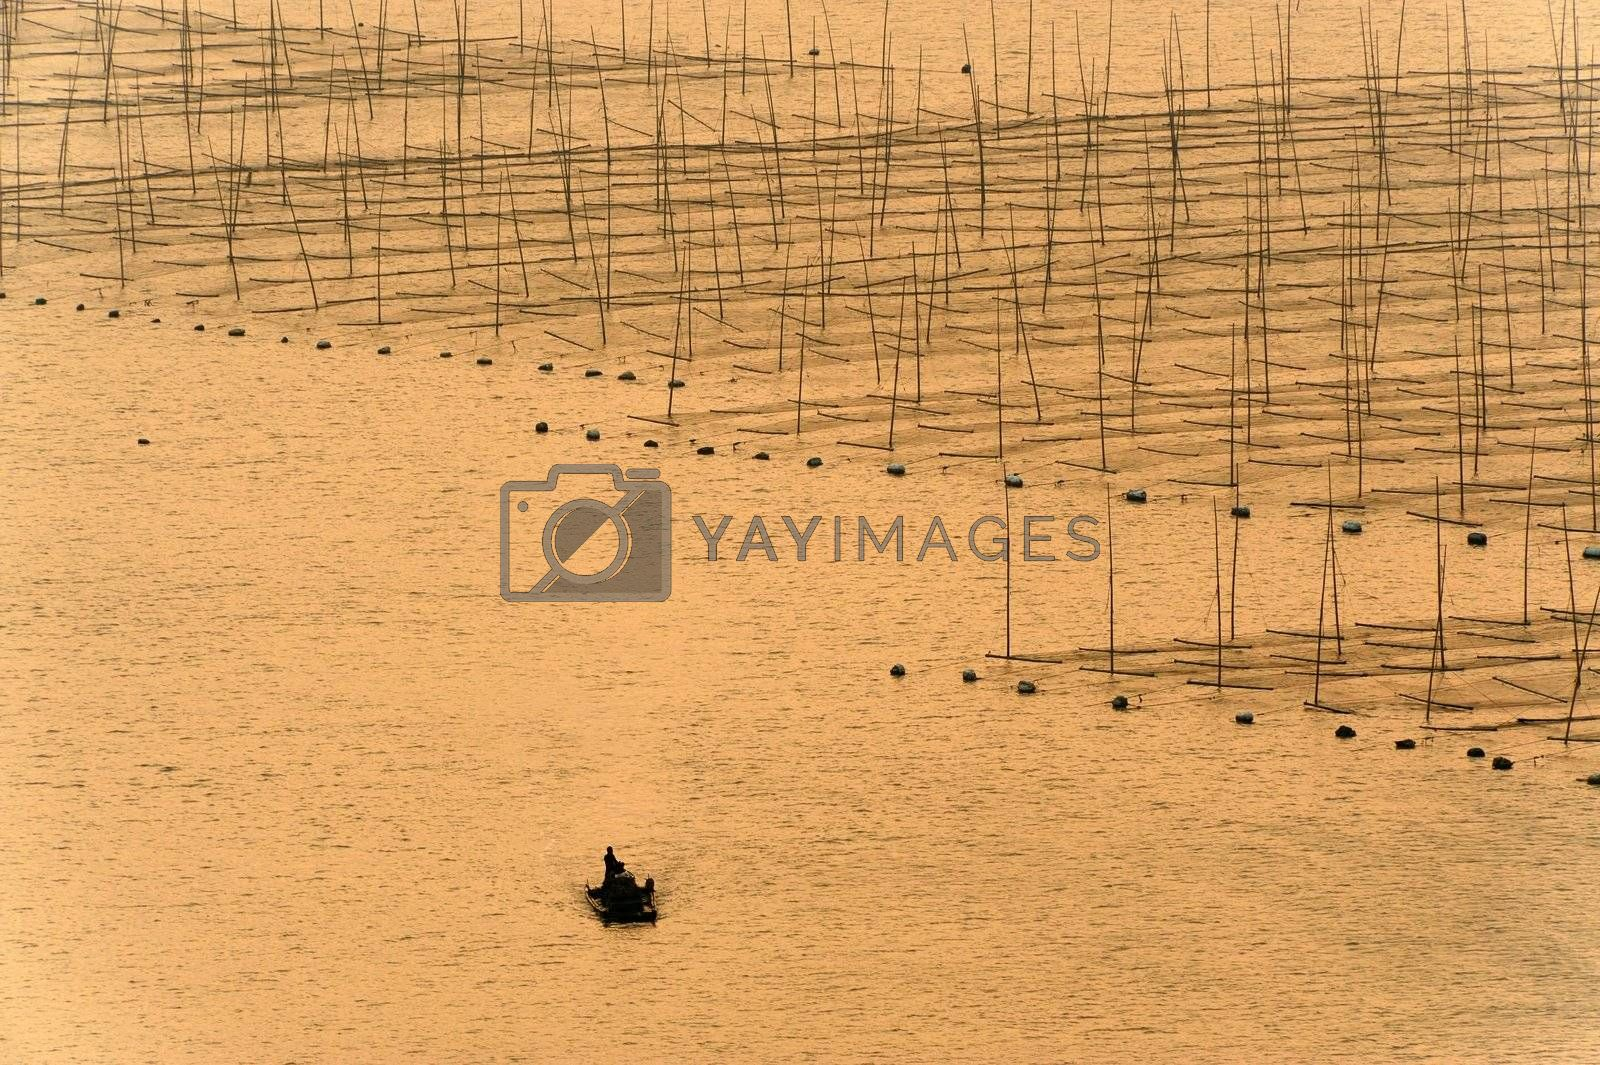 Seaweed farm and boats in the ocean at sunset in Fujian province of China